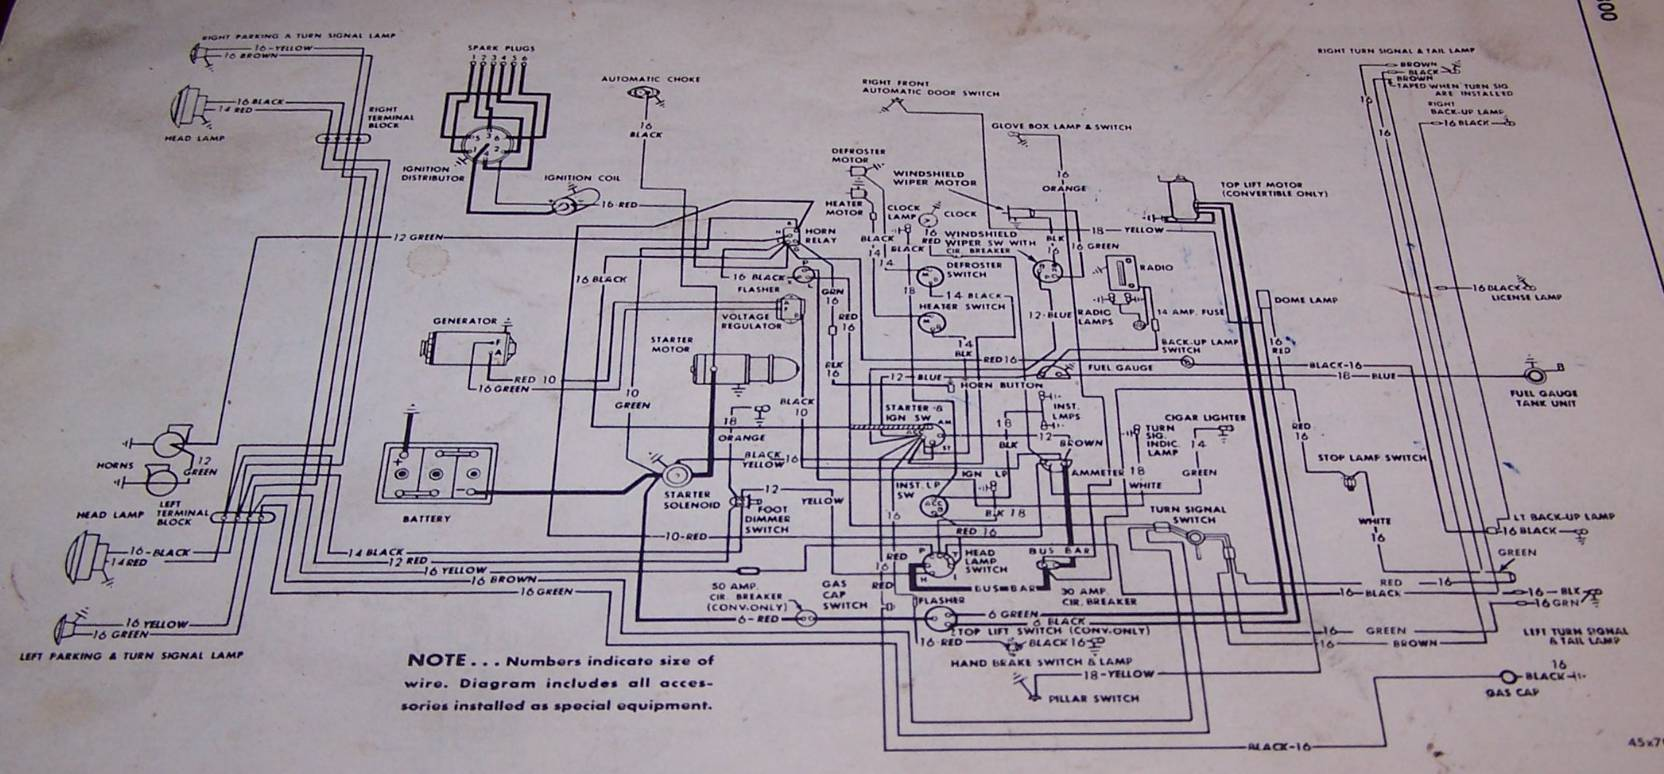 1967 Plymouth Barracuda Wiring Diagram Smart Diagrams 1975 Valiant Free Download 1949 Basic Guide U2022 Rh Needpixies Com 1968 Electrical Harness